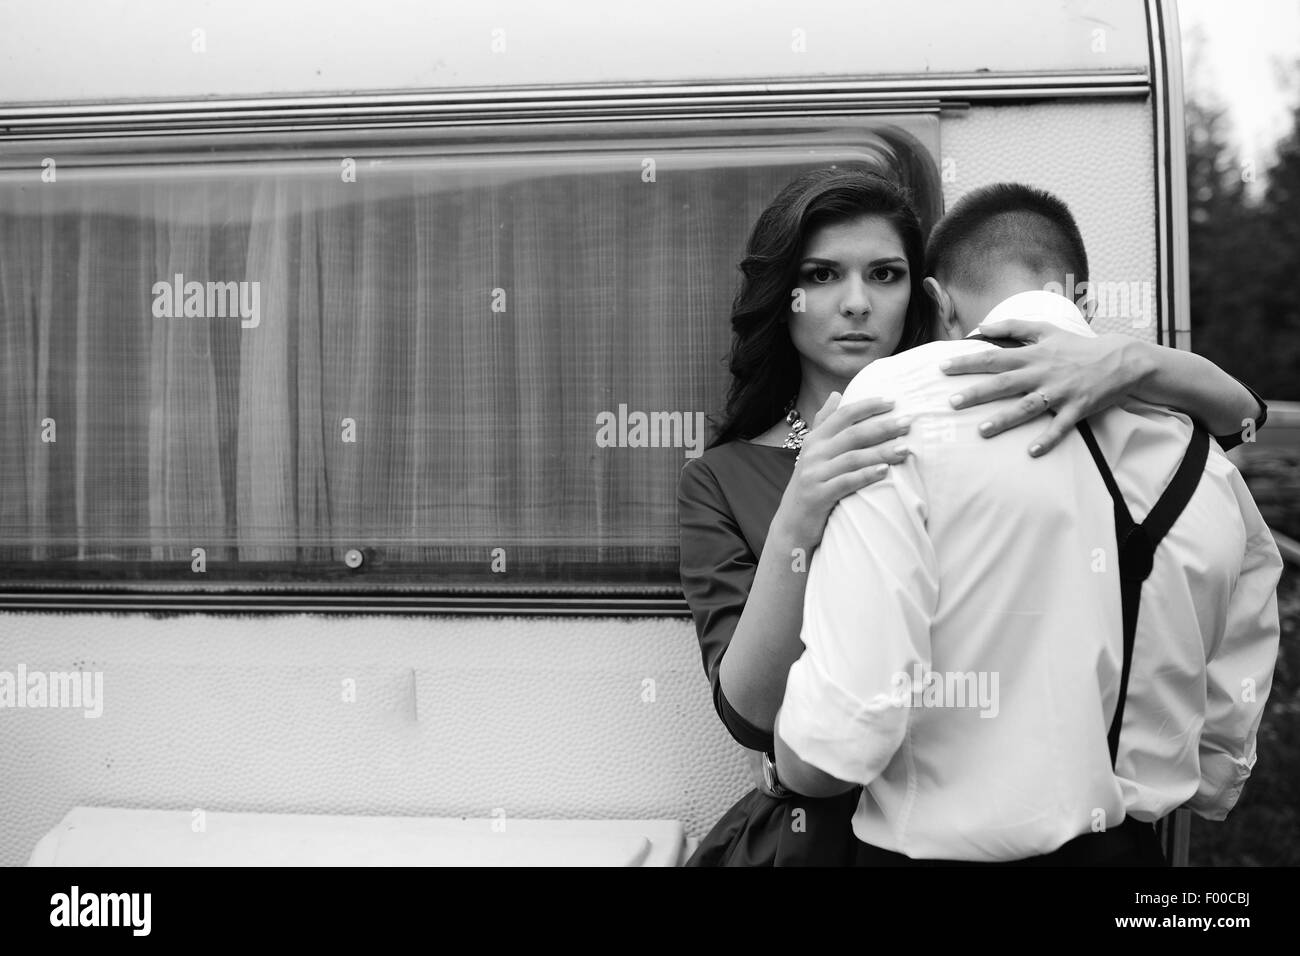 man and woman is hidden from view behind a trailer - Stock Image